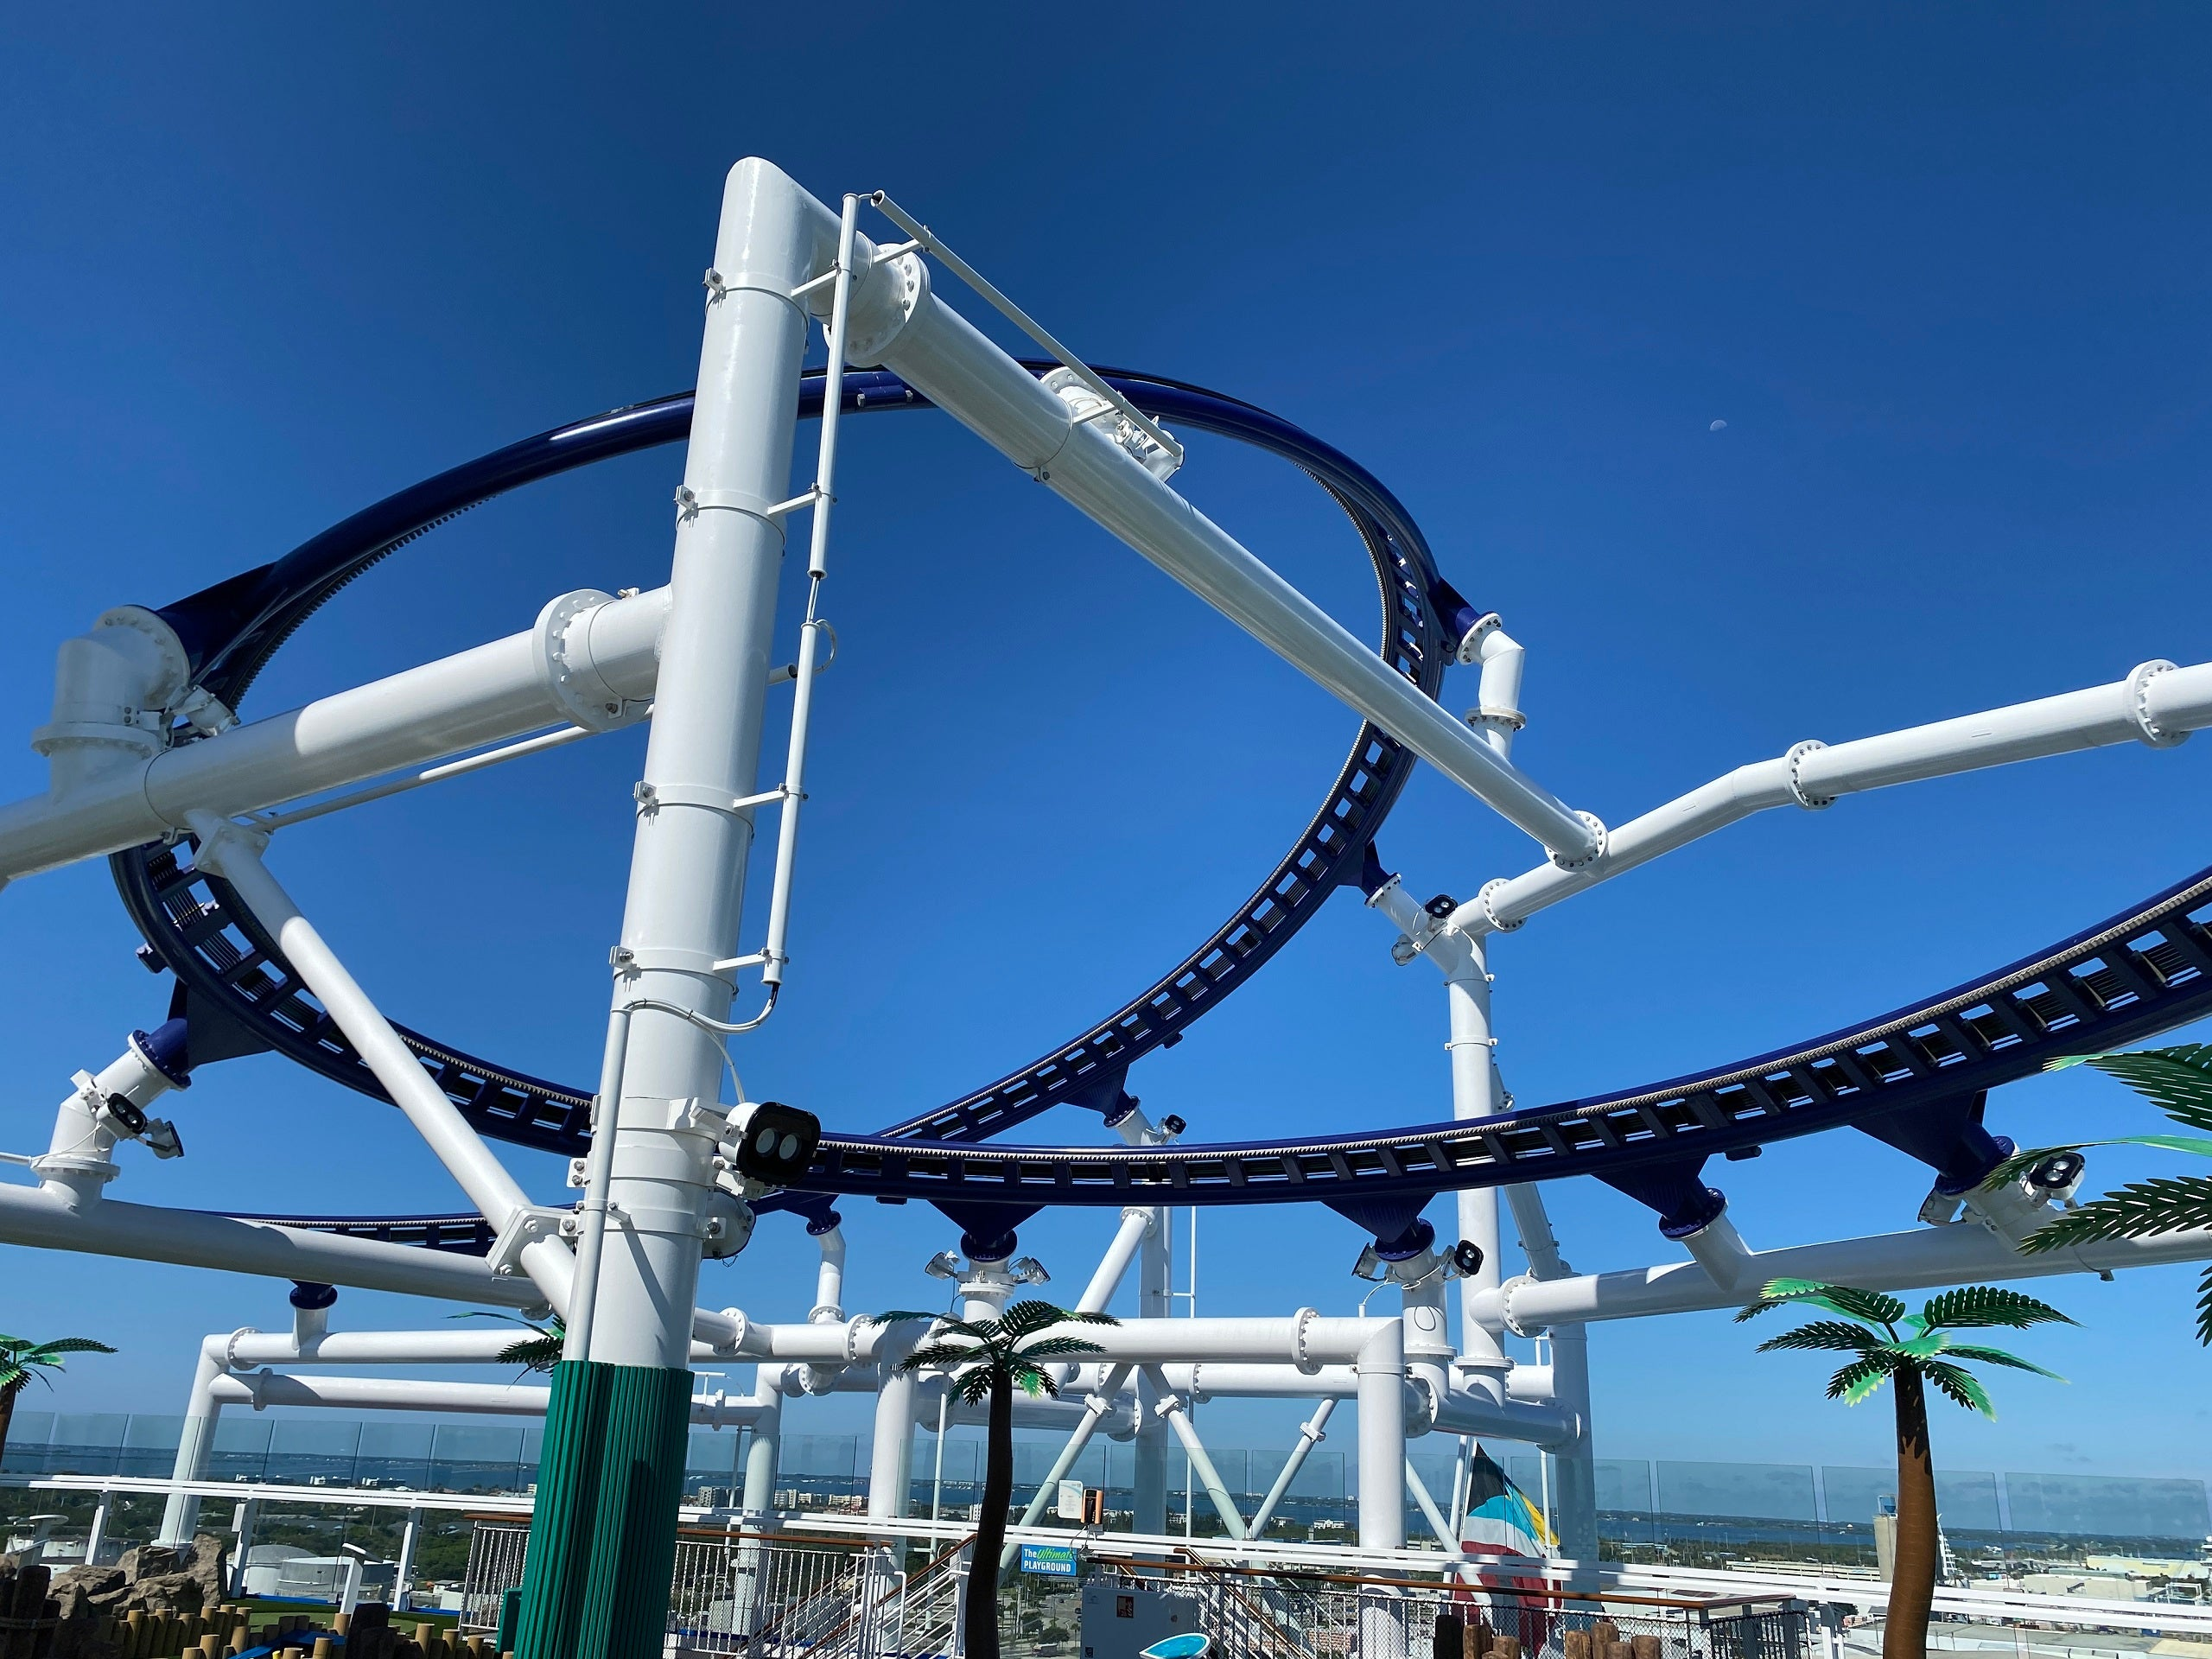 $15 for 30 seconds: What it�s like to ride the first-ever roller coaster at sea